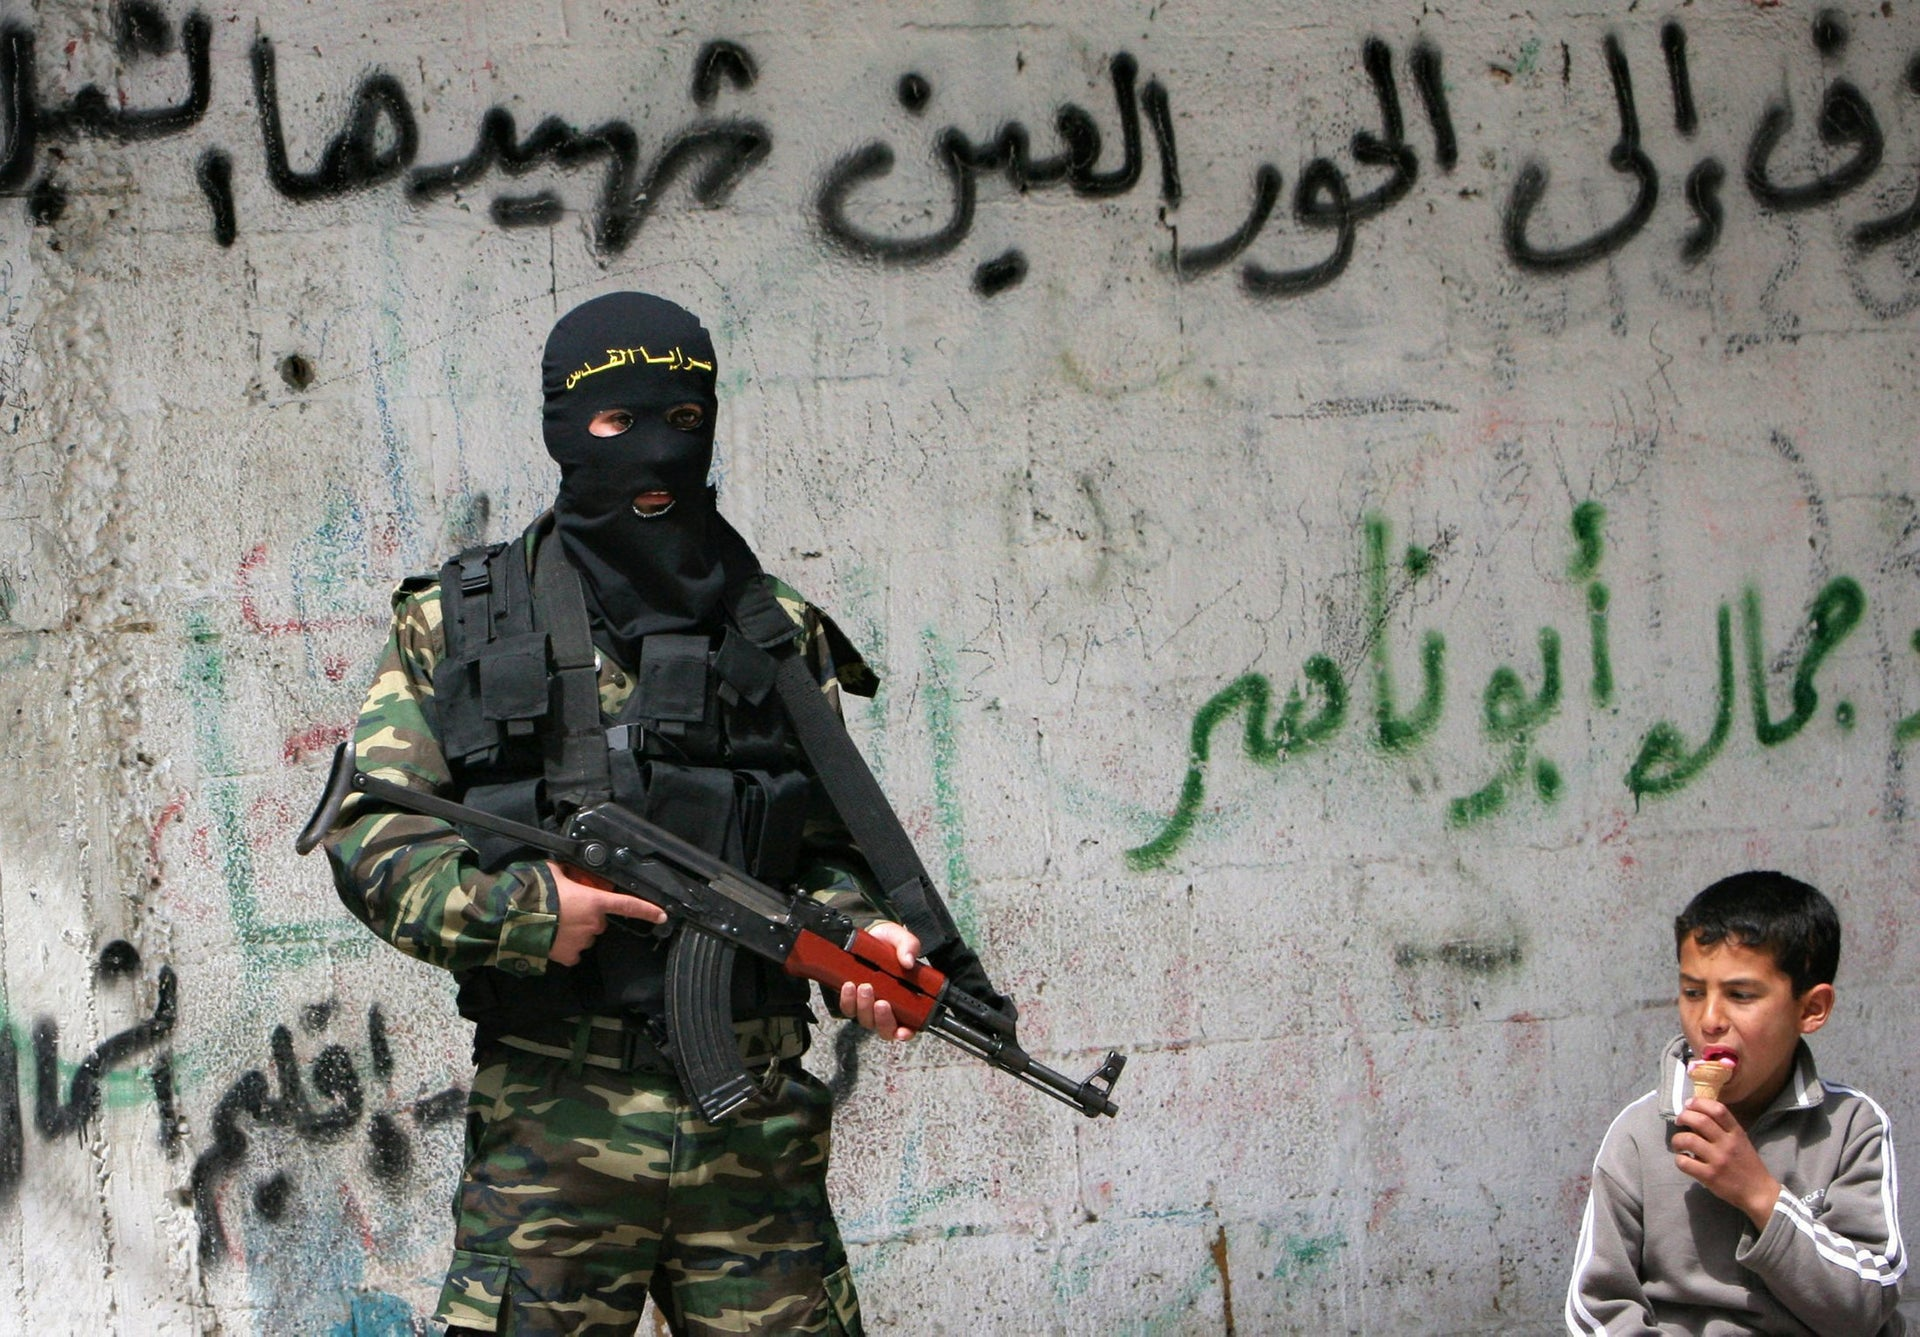 "A Palestinian boy eats ice cream next to a masked Islamic Jihad militant standing guard next to the house used by Hamas during recent clashes between Fatah and Hamas, in Beit Lahiya northern Gaza Strip, Thursday, March 22, 2007. A militant was killed during clashes between Fatah and Hamas militants in Beit Lahiya on Wednesday. Graffiti in Arabic reads ""We will send our martyr to paradise""."